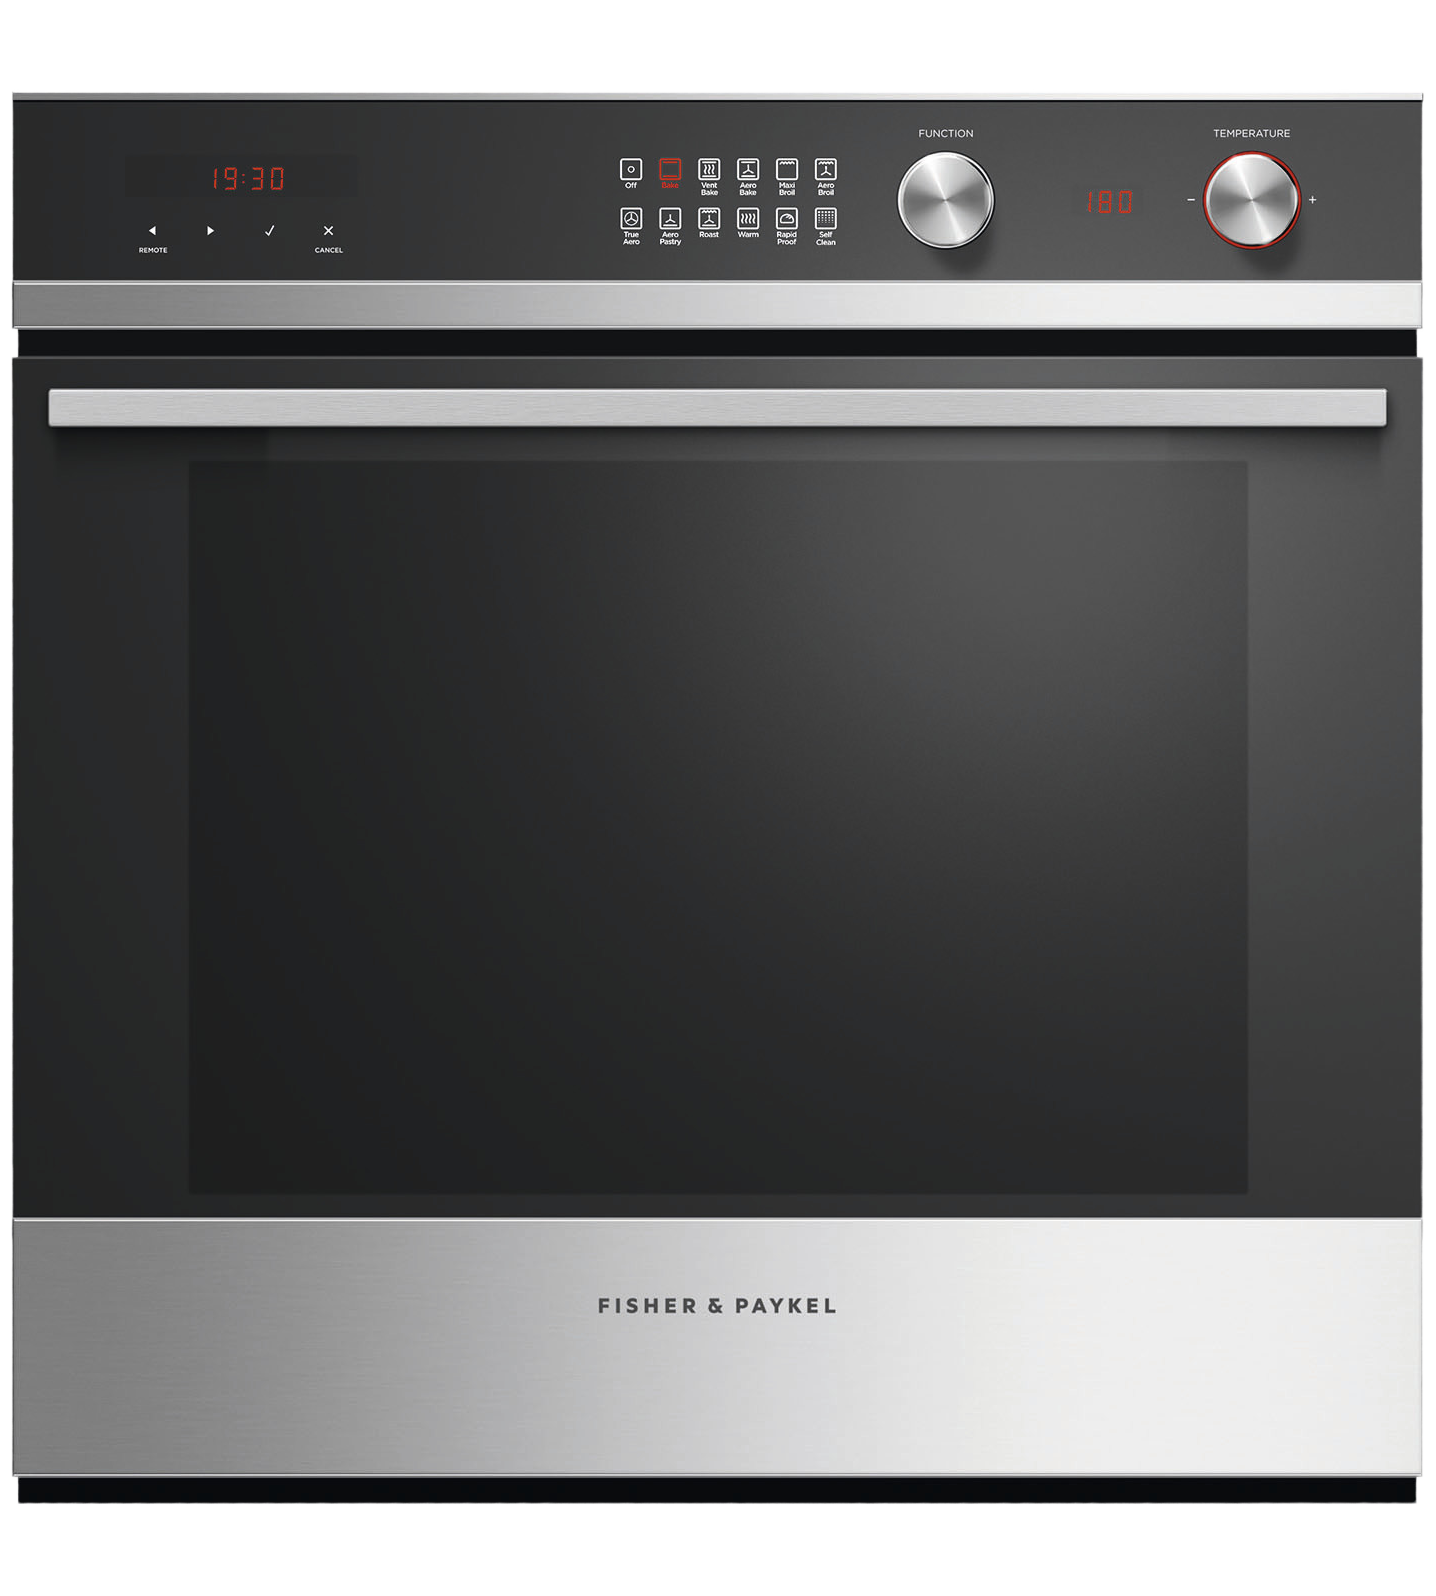 Fisher & Paykel Oven OB24SCDEPX1